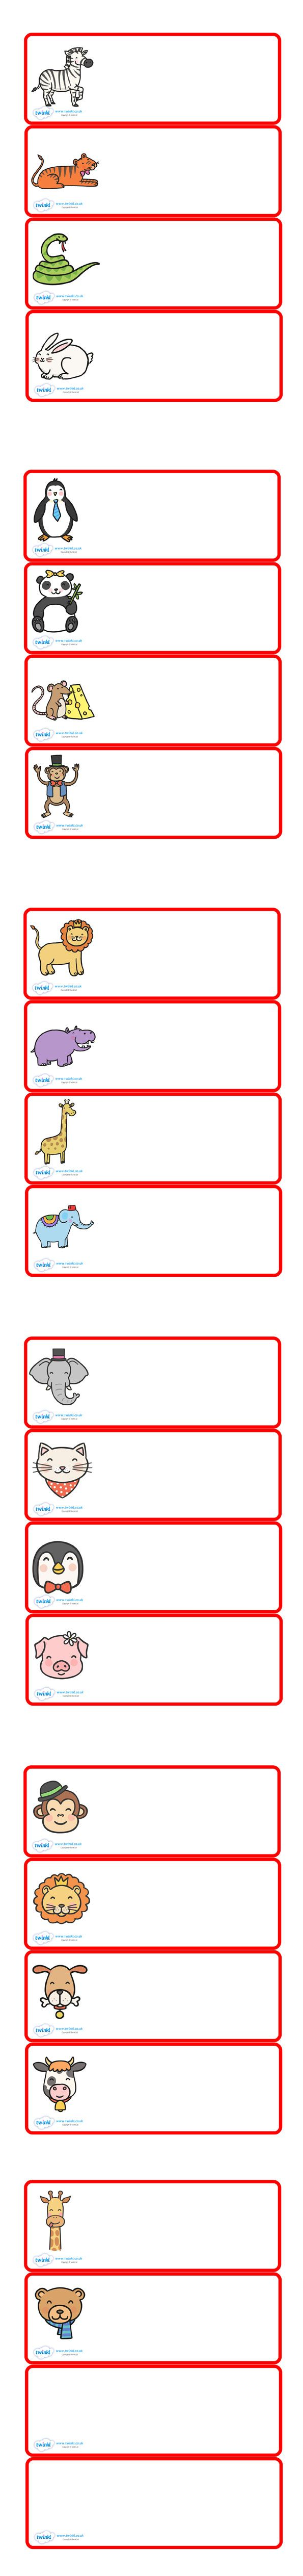 Twinkl Resources Editable Peg Drawer Labels (Animals) Classroom printables for Pre-School, Kindergarten, Elementary School and beyond! Labels, Drawers, Pegs, Animals